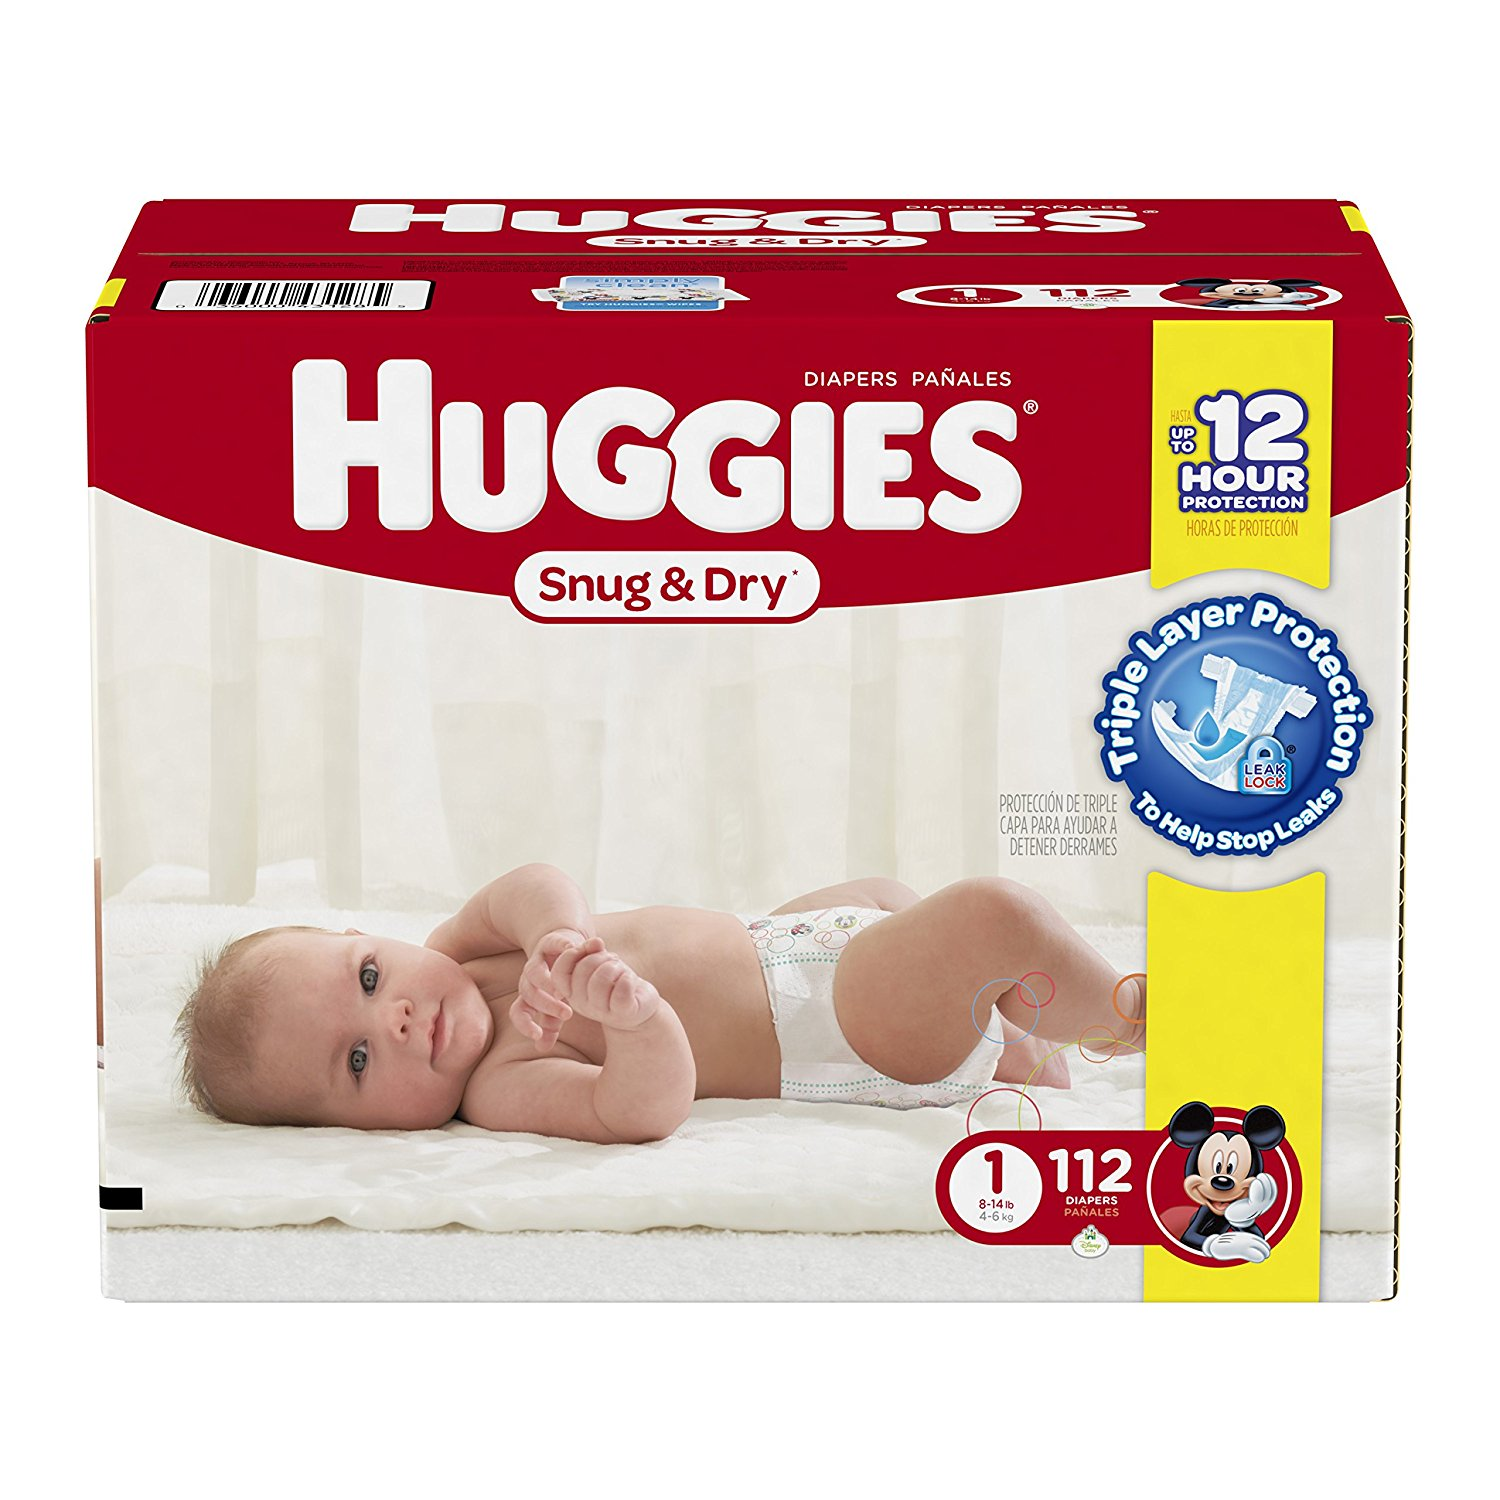 811RvGgvL. SL1500 Top 10 Best Baby Diapers 2021 - Affordable Disposable Baby Diaper Reviews